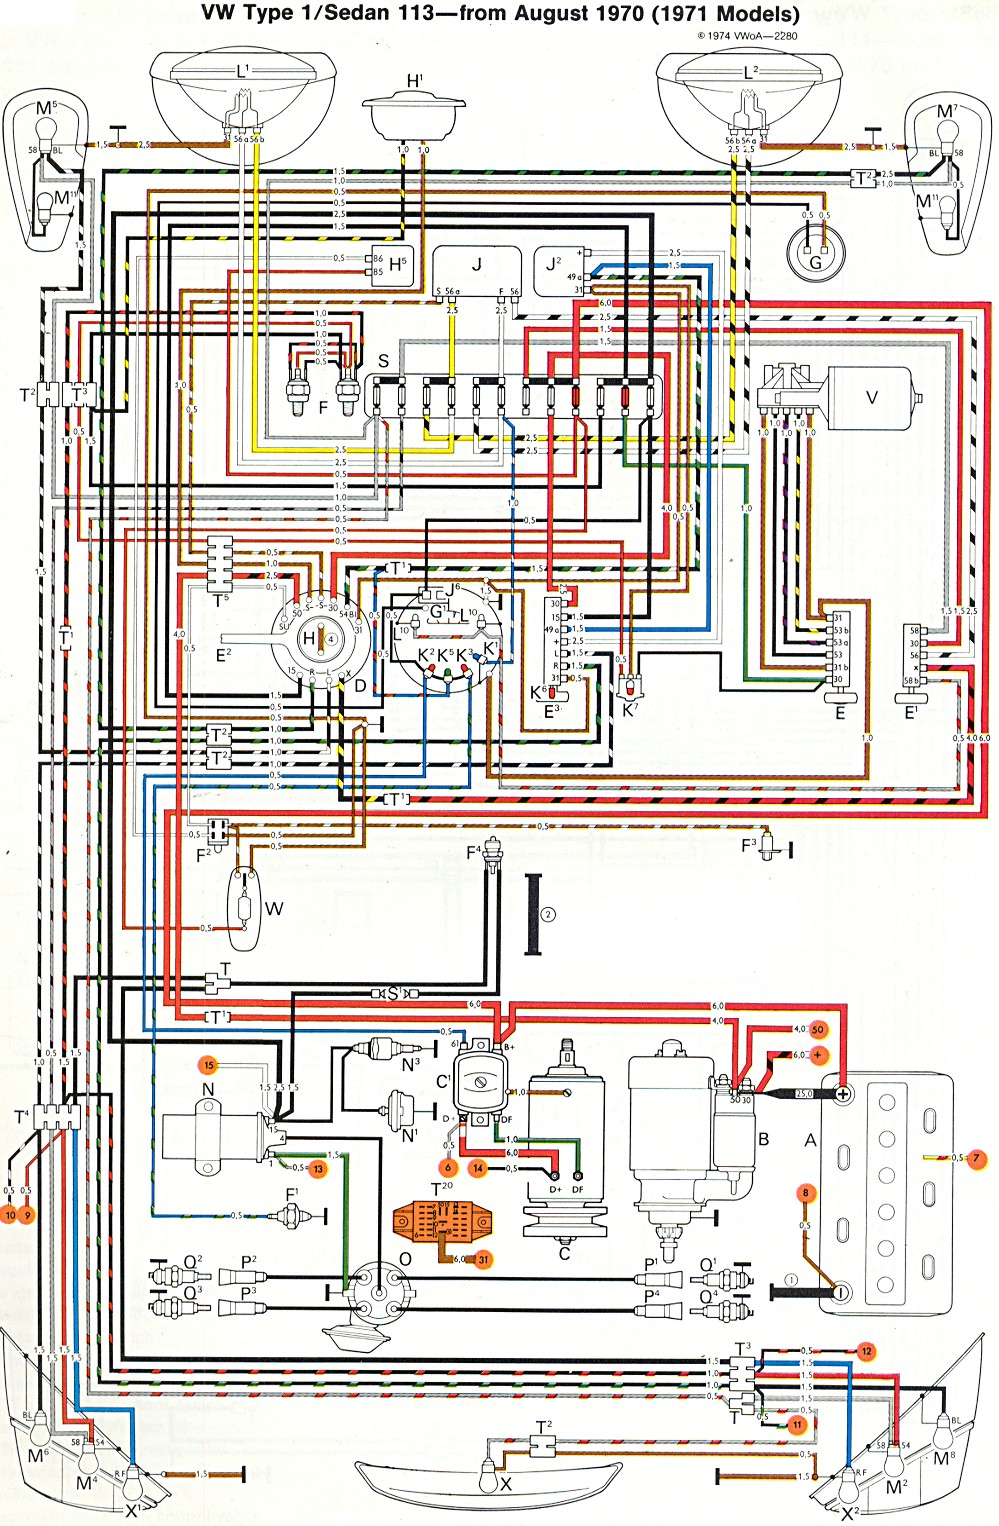 1973 Land Rover Wiring Diagram List Of Schematic Circuit C10 Harness 2008 Vw Gti Another Blog About U2022 Rh Twosoutherndivas Co